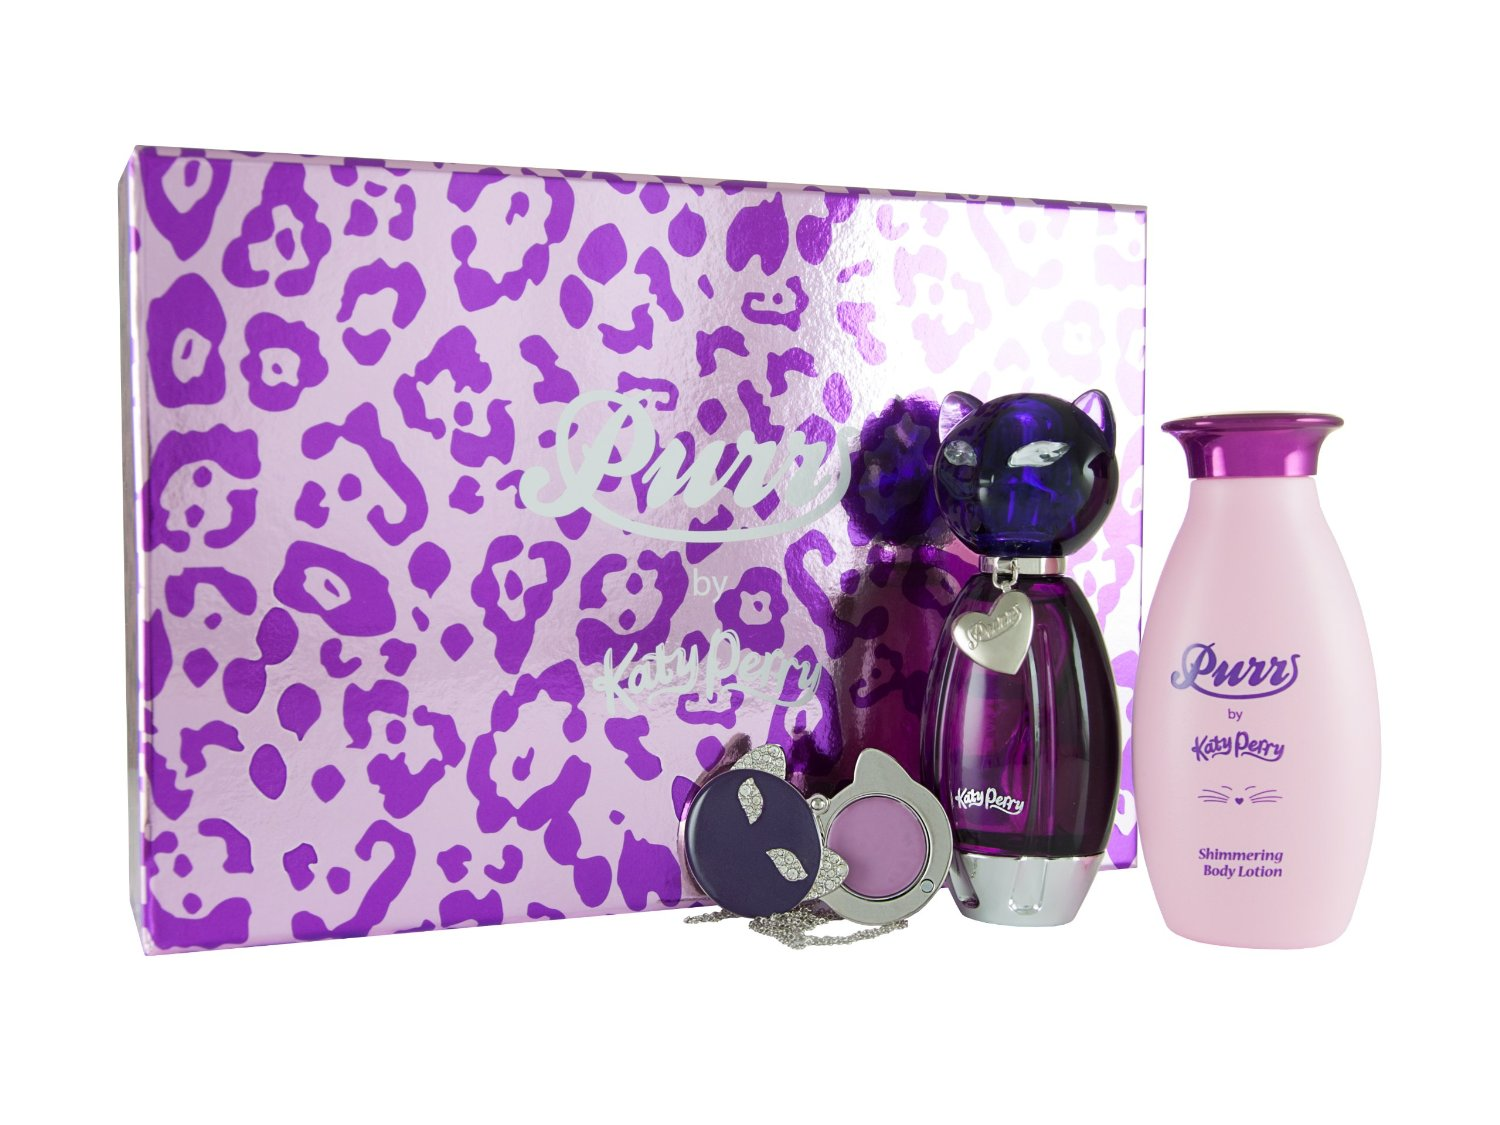 Katy-Perry-Purr-EDP-50ml-Body-Lotion-120ml-Solid-Perfume-Locket-Gift-Set-BNIB